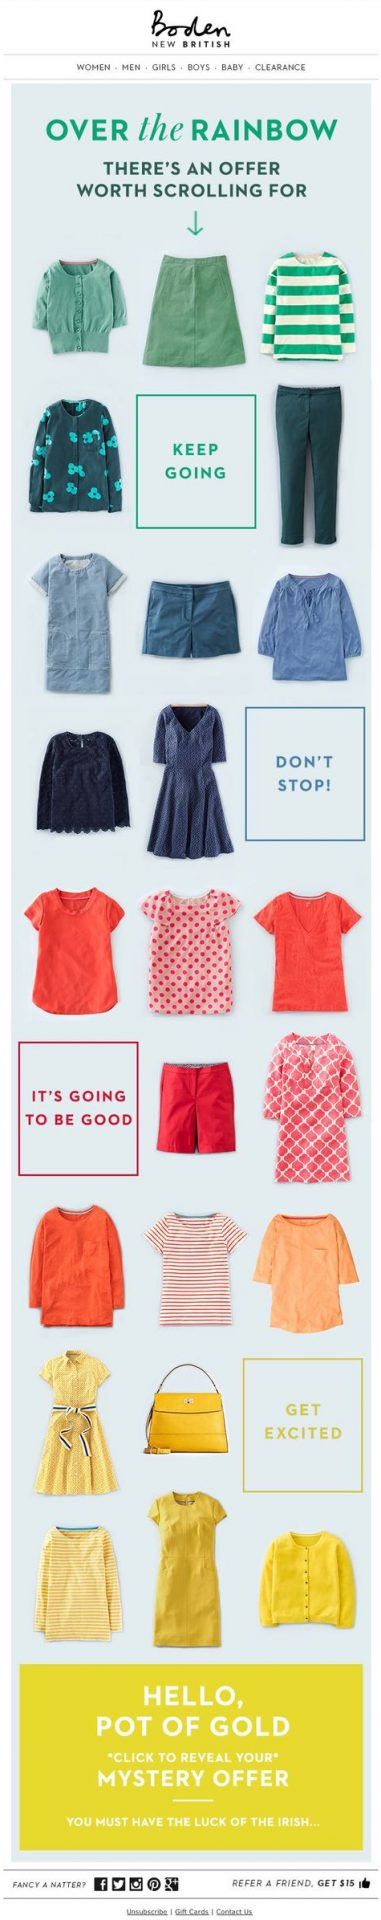 boden-email-campaign